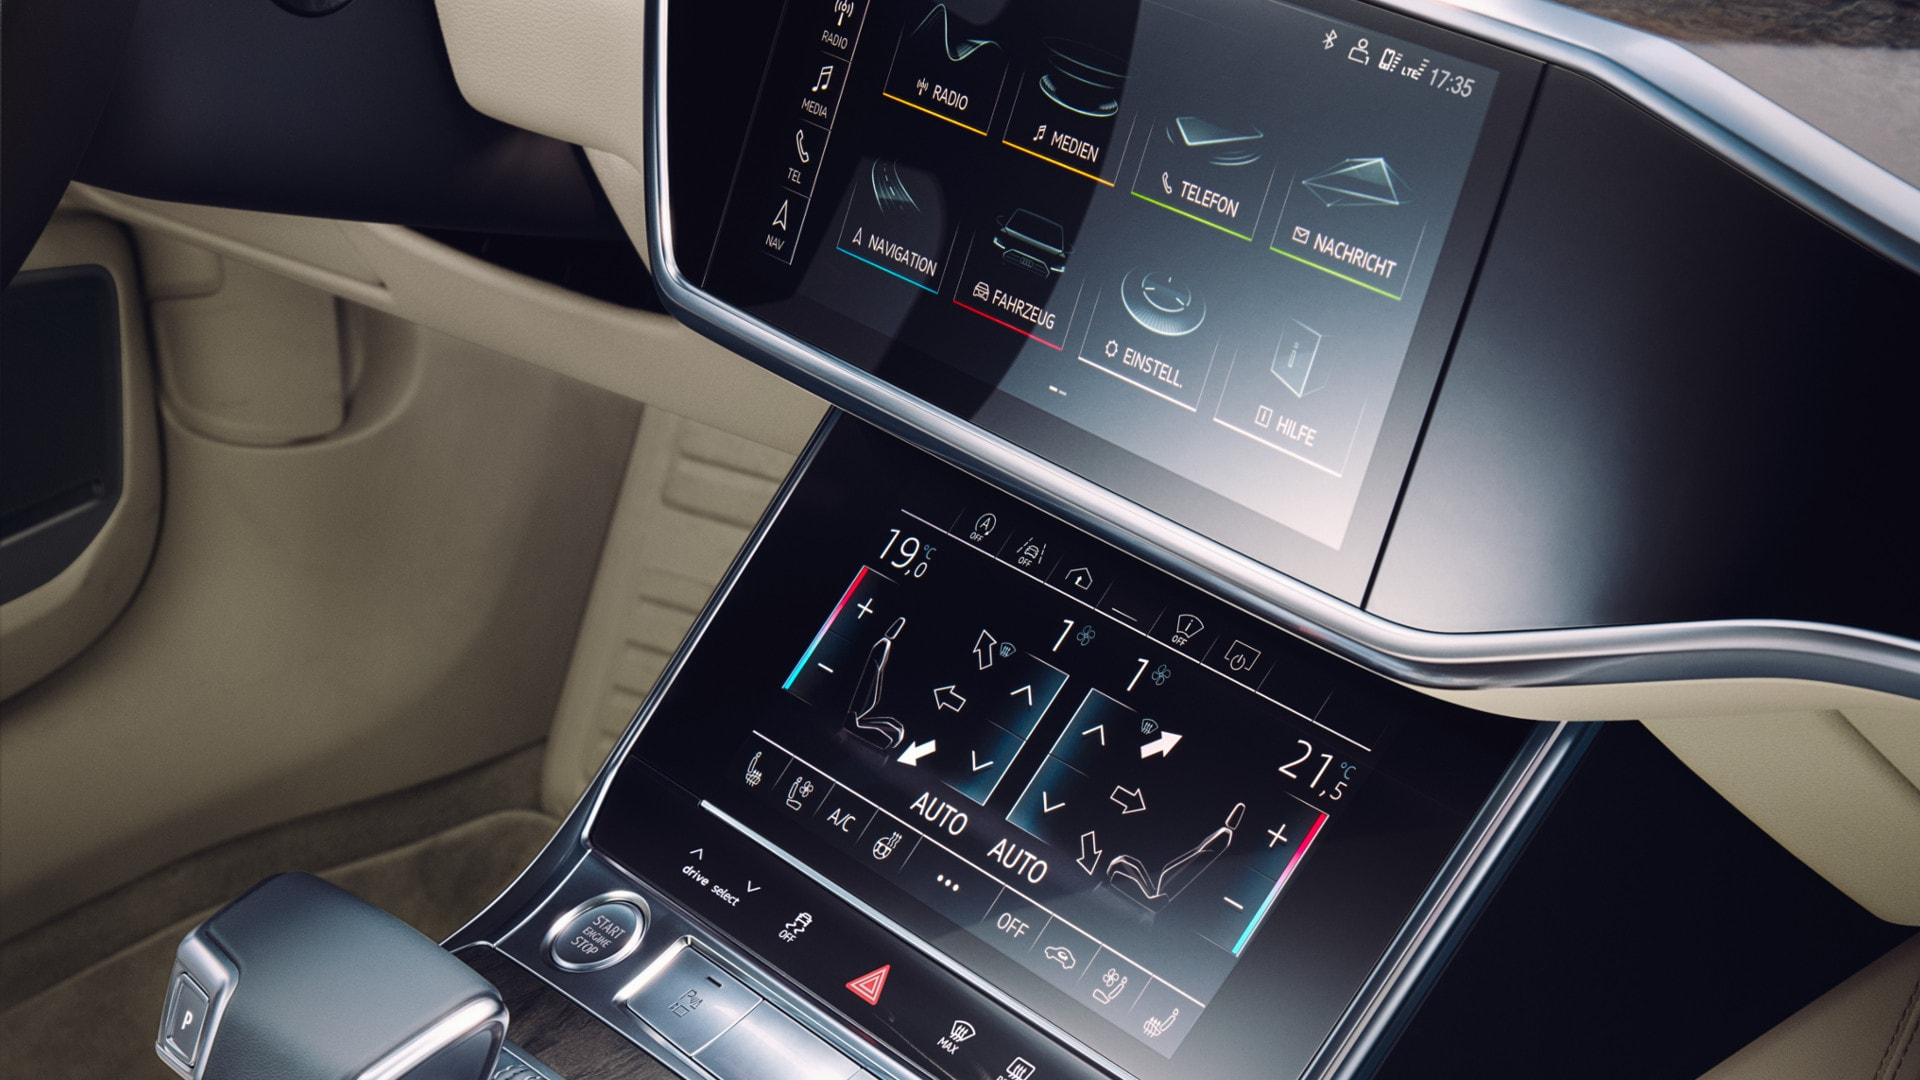 Audi MMI touchscreen